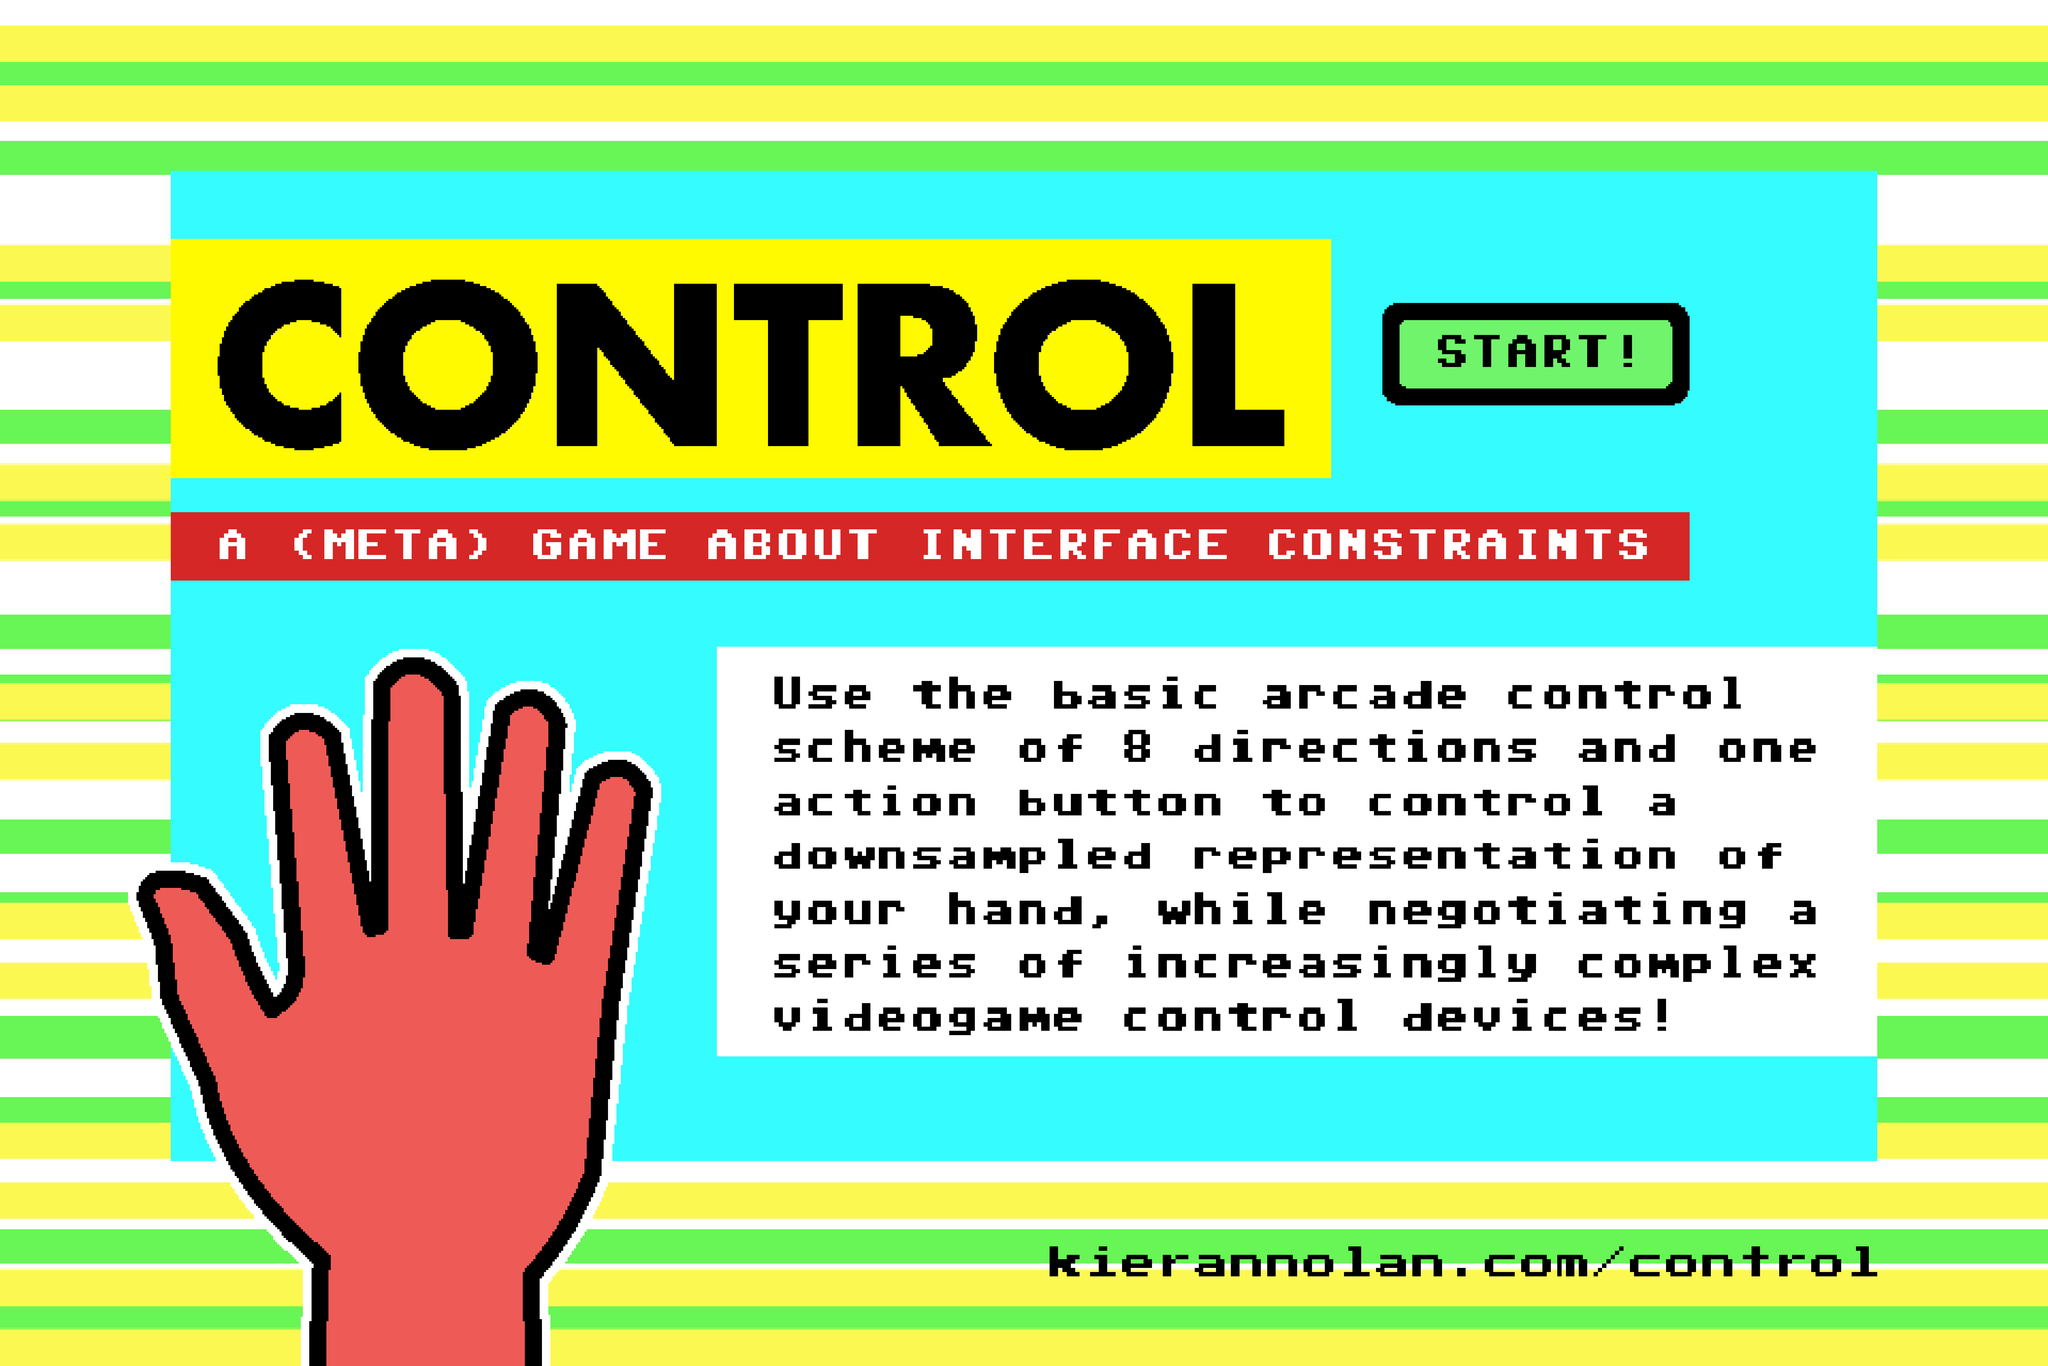 CONTROL 1.png